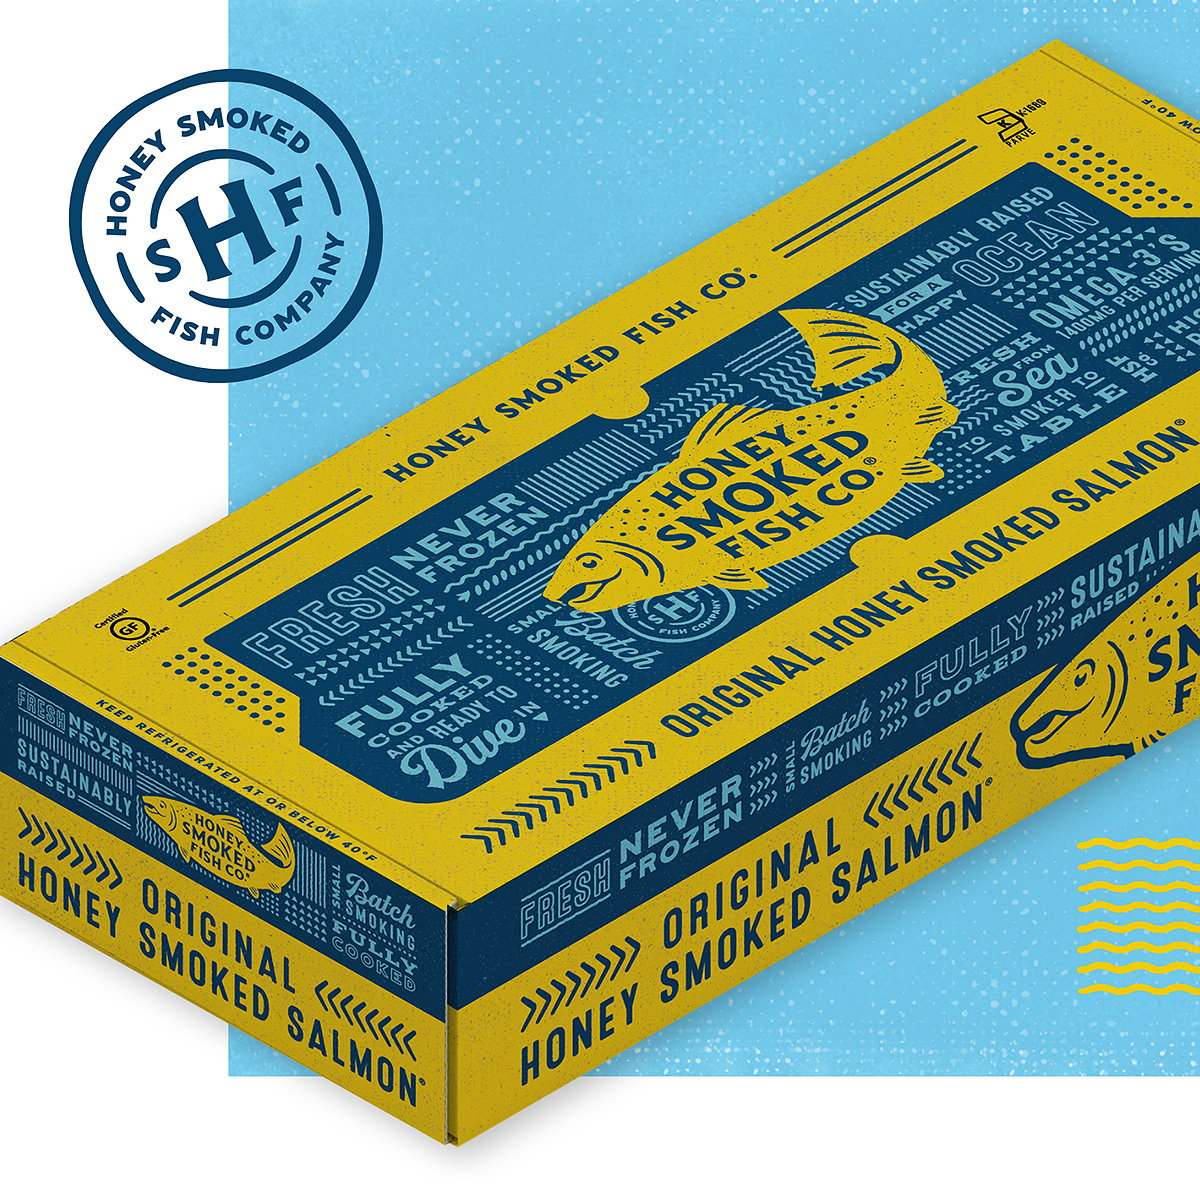 LRXD Redesigns Honey Smoked Fish Co. Packaging